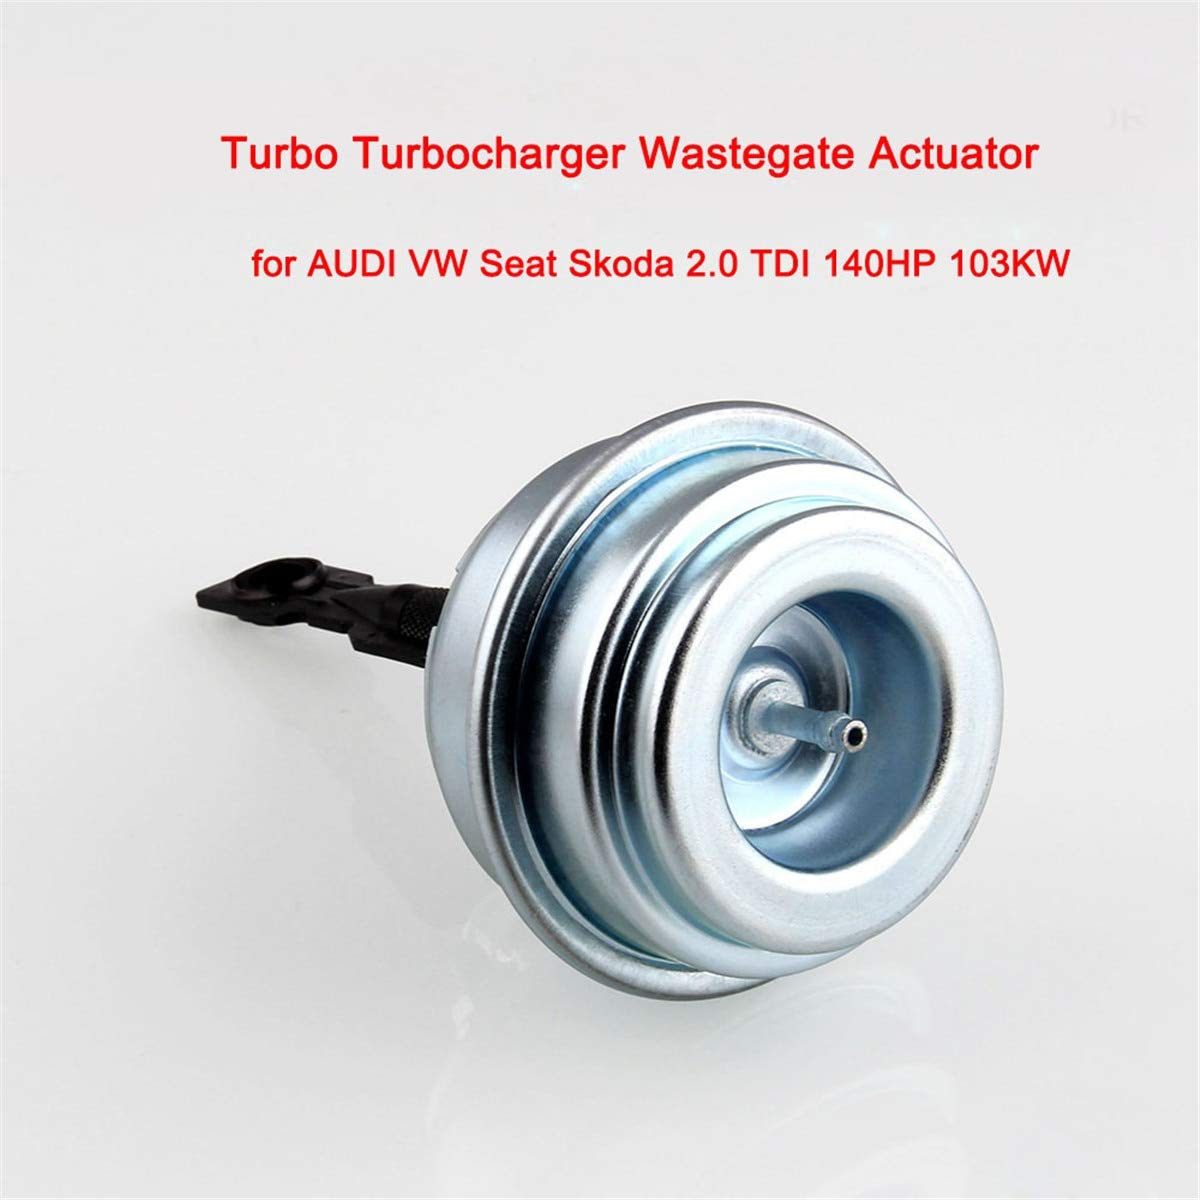 Fincos Turbo Wastegate Vacuum Actuator for VW 1.9 TDI ALH AHF AUY GT1749V 434855-0015